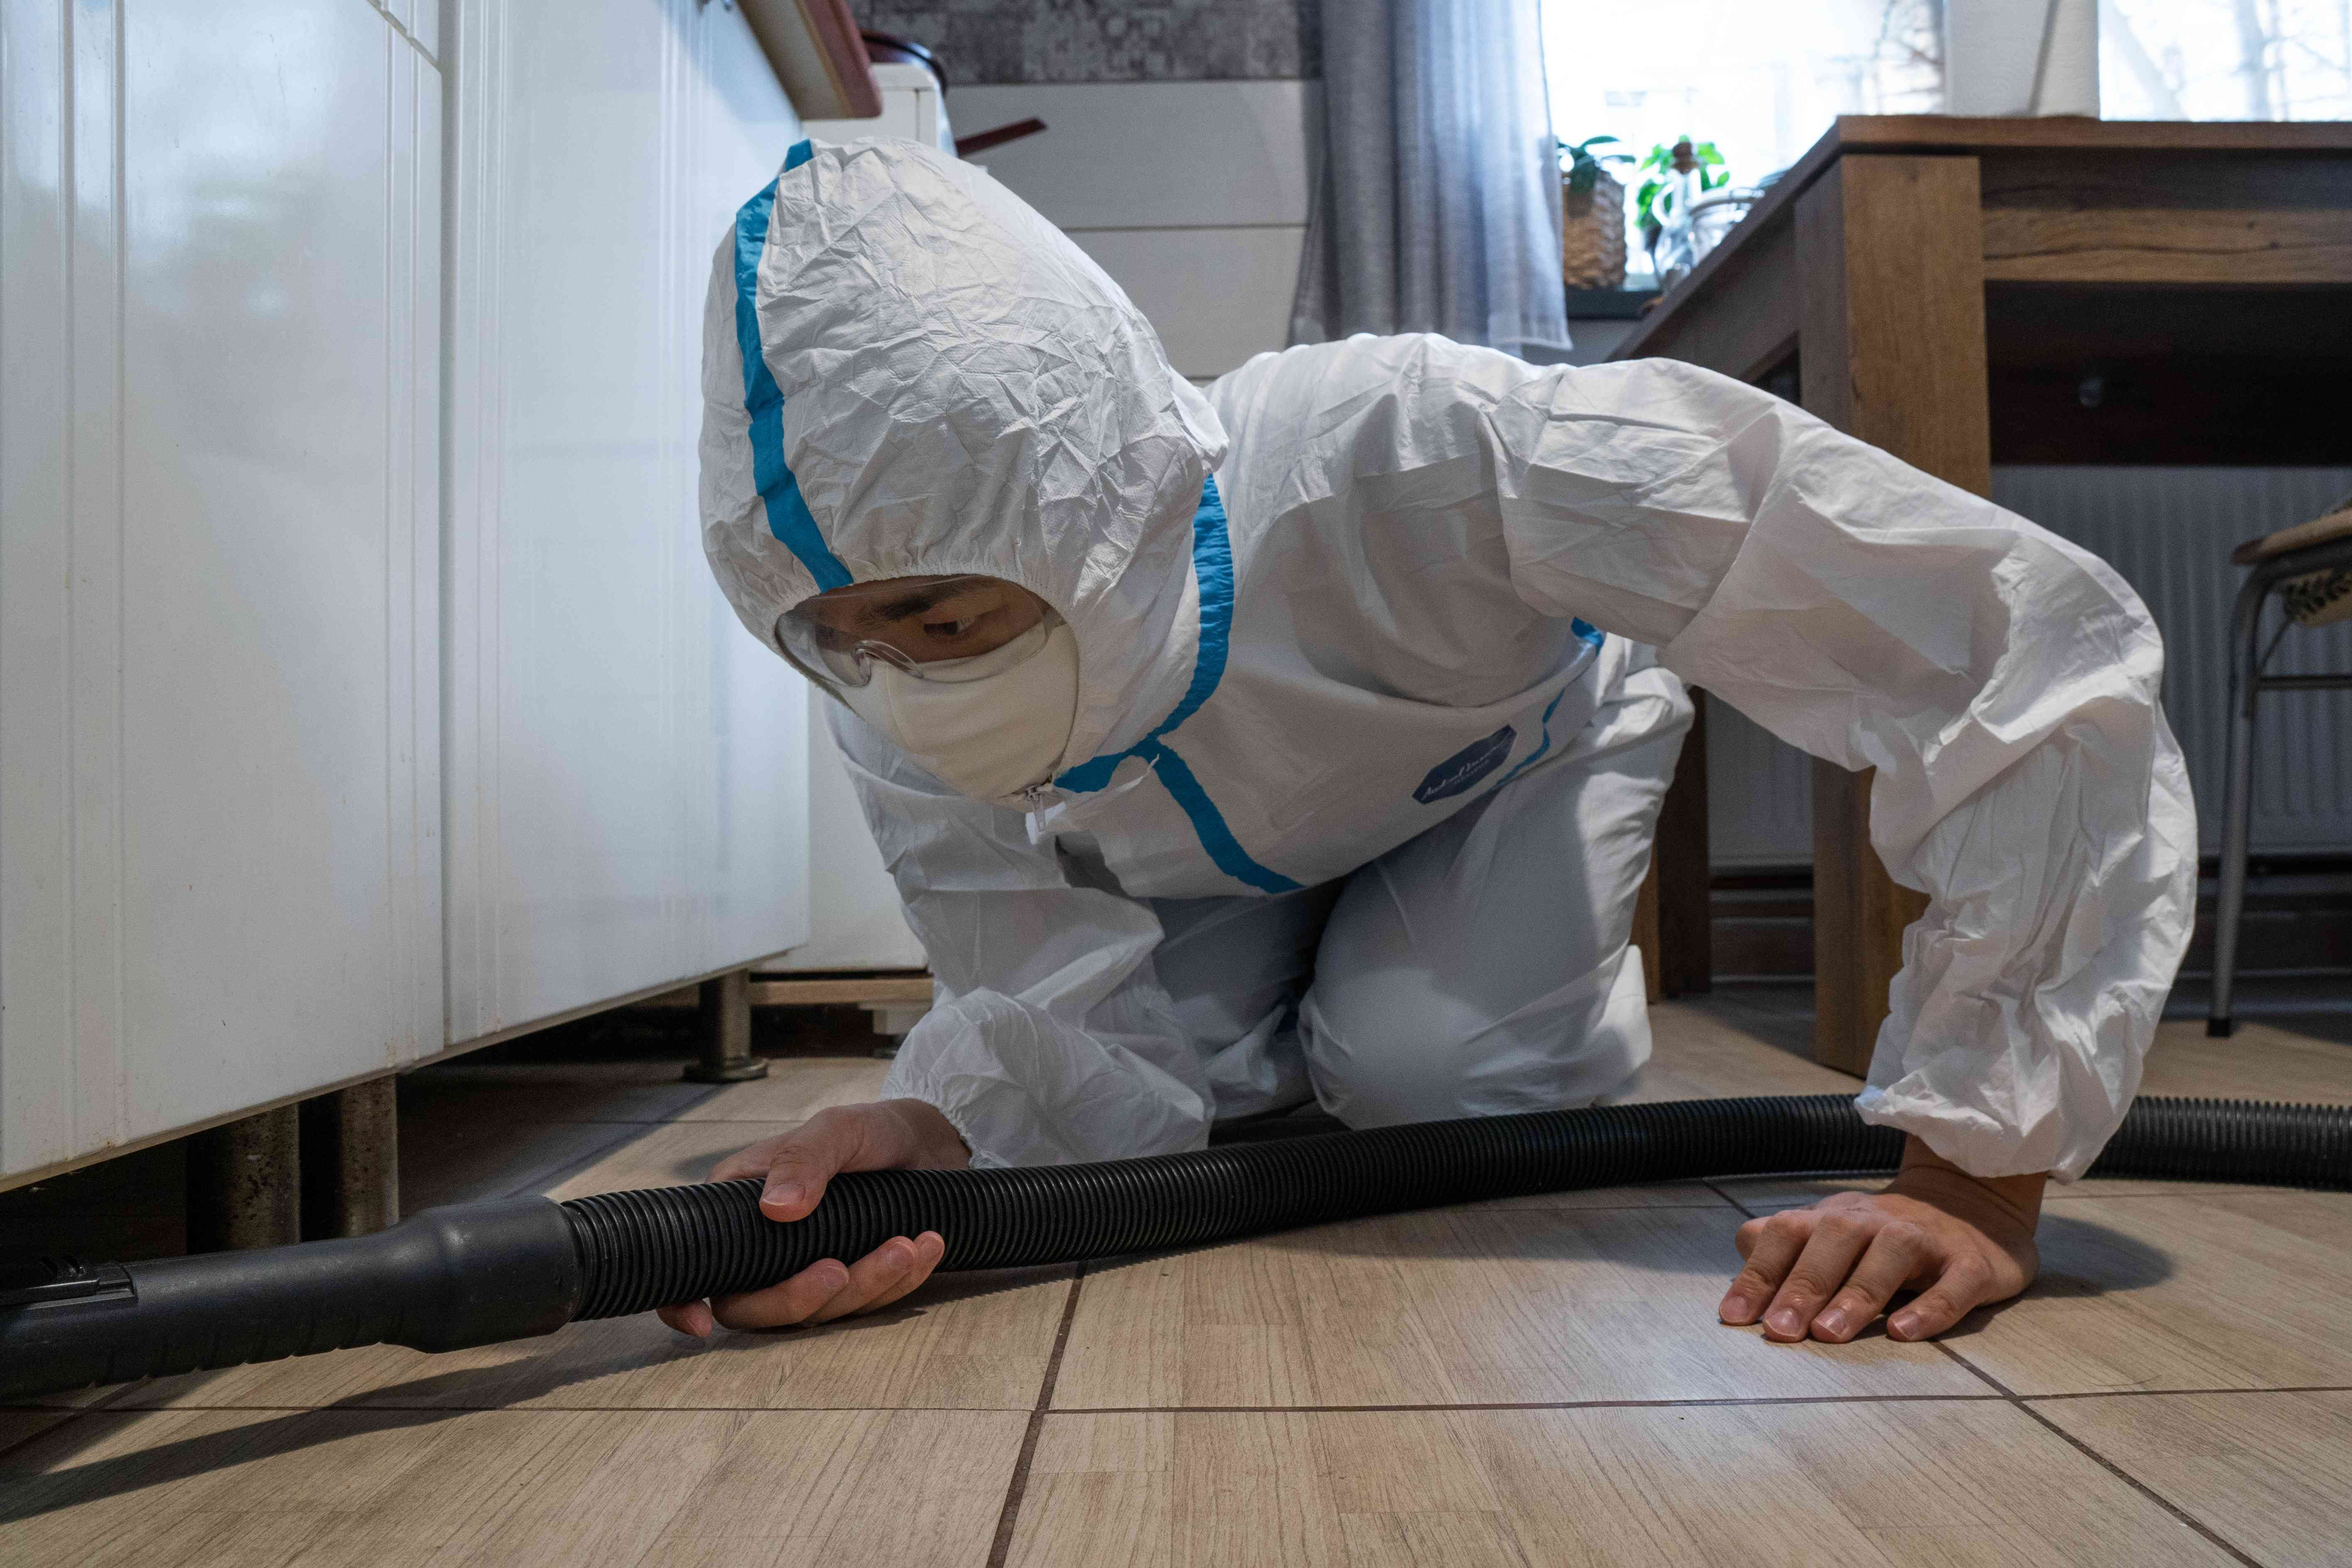 bug expert in hazmat suit and mask crouches on ground with large hose under cabinets